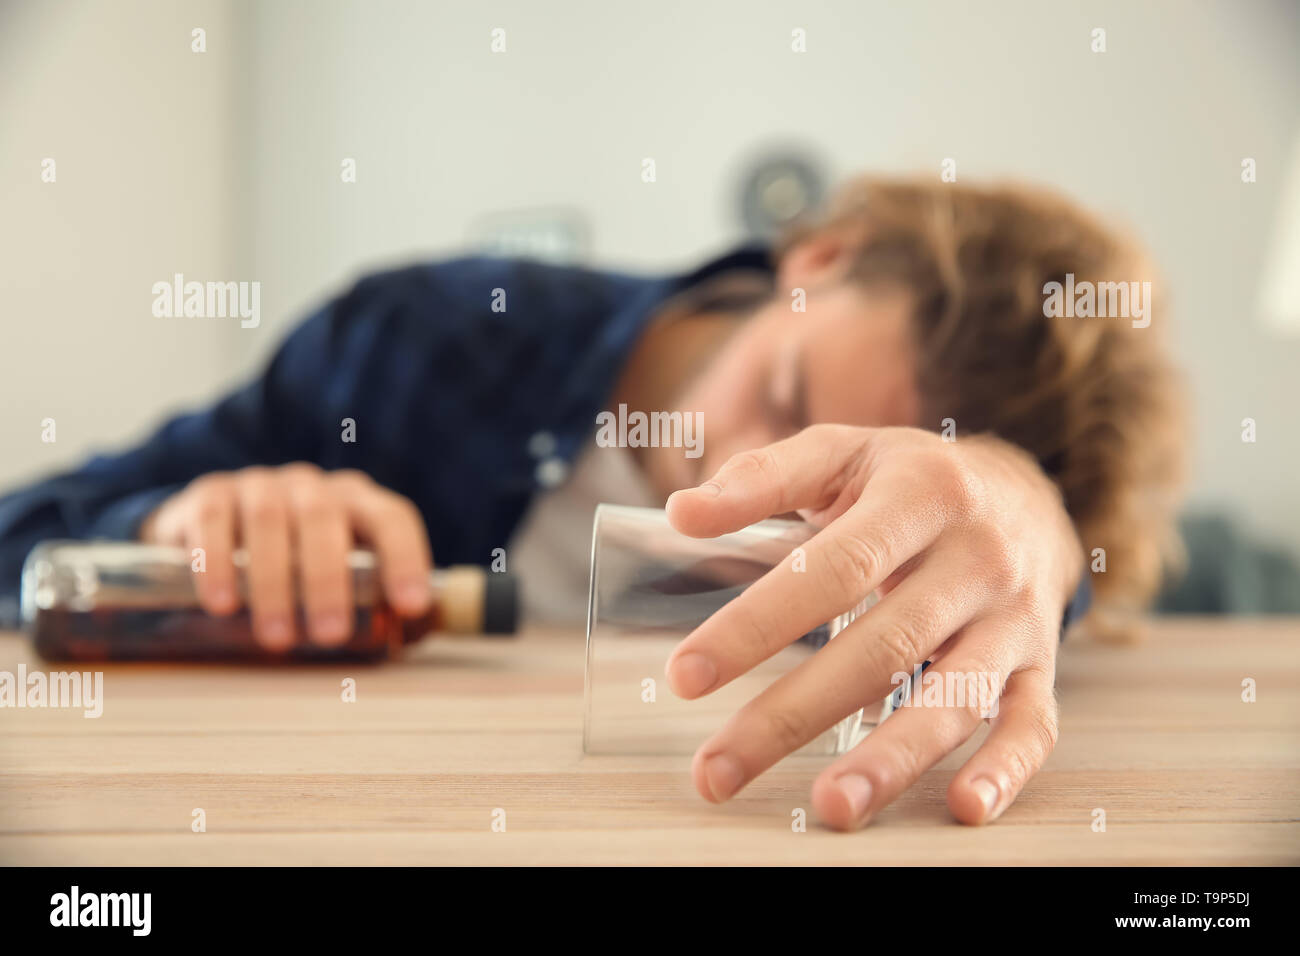 Unconscious drunk man with bottle and empty glass at table. Alcoholism concept Stock Photo